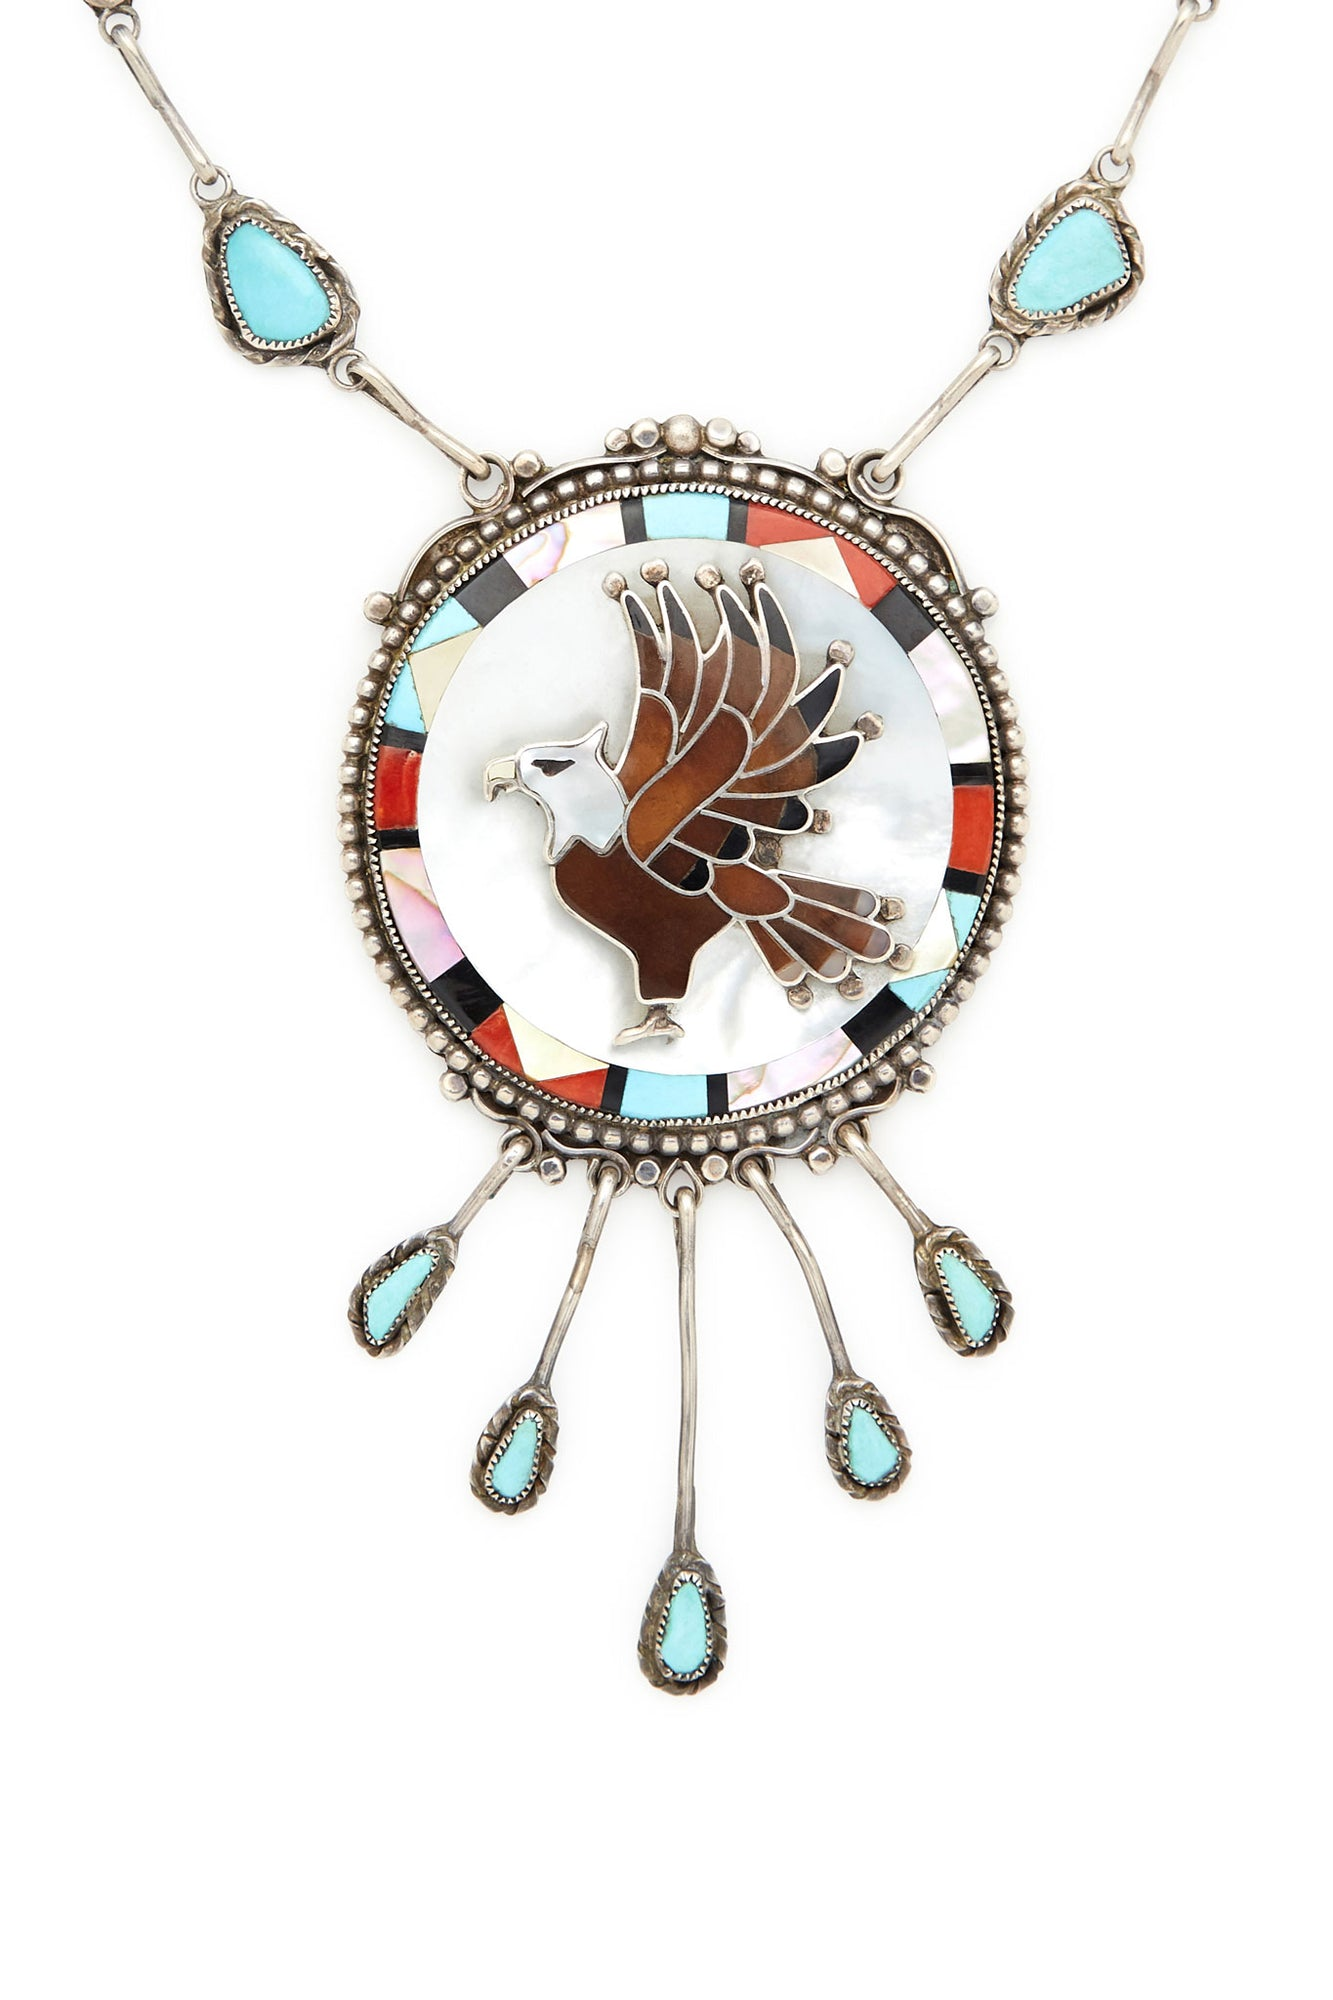 brass products cut photo hand charms mala this with suede is necklace on triple turquoise feather crafted pm gorgeous pendant eagle heart